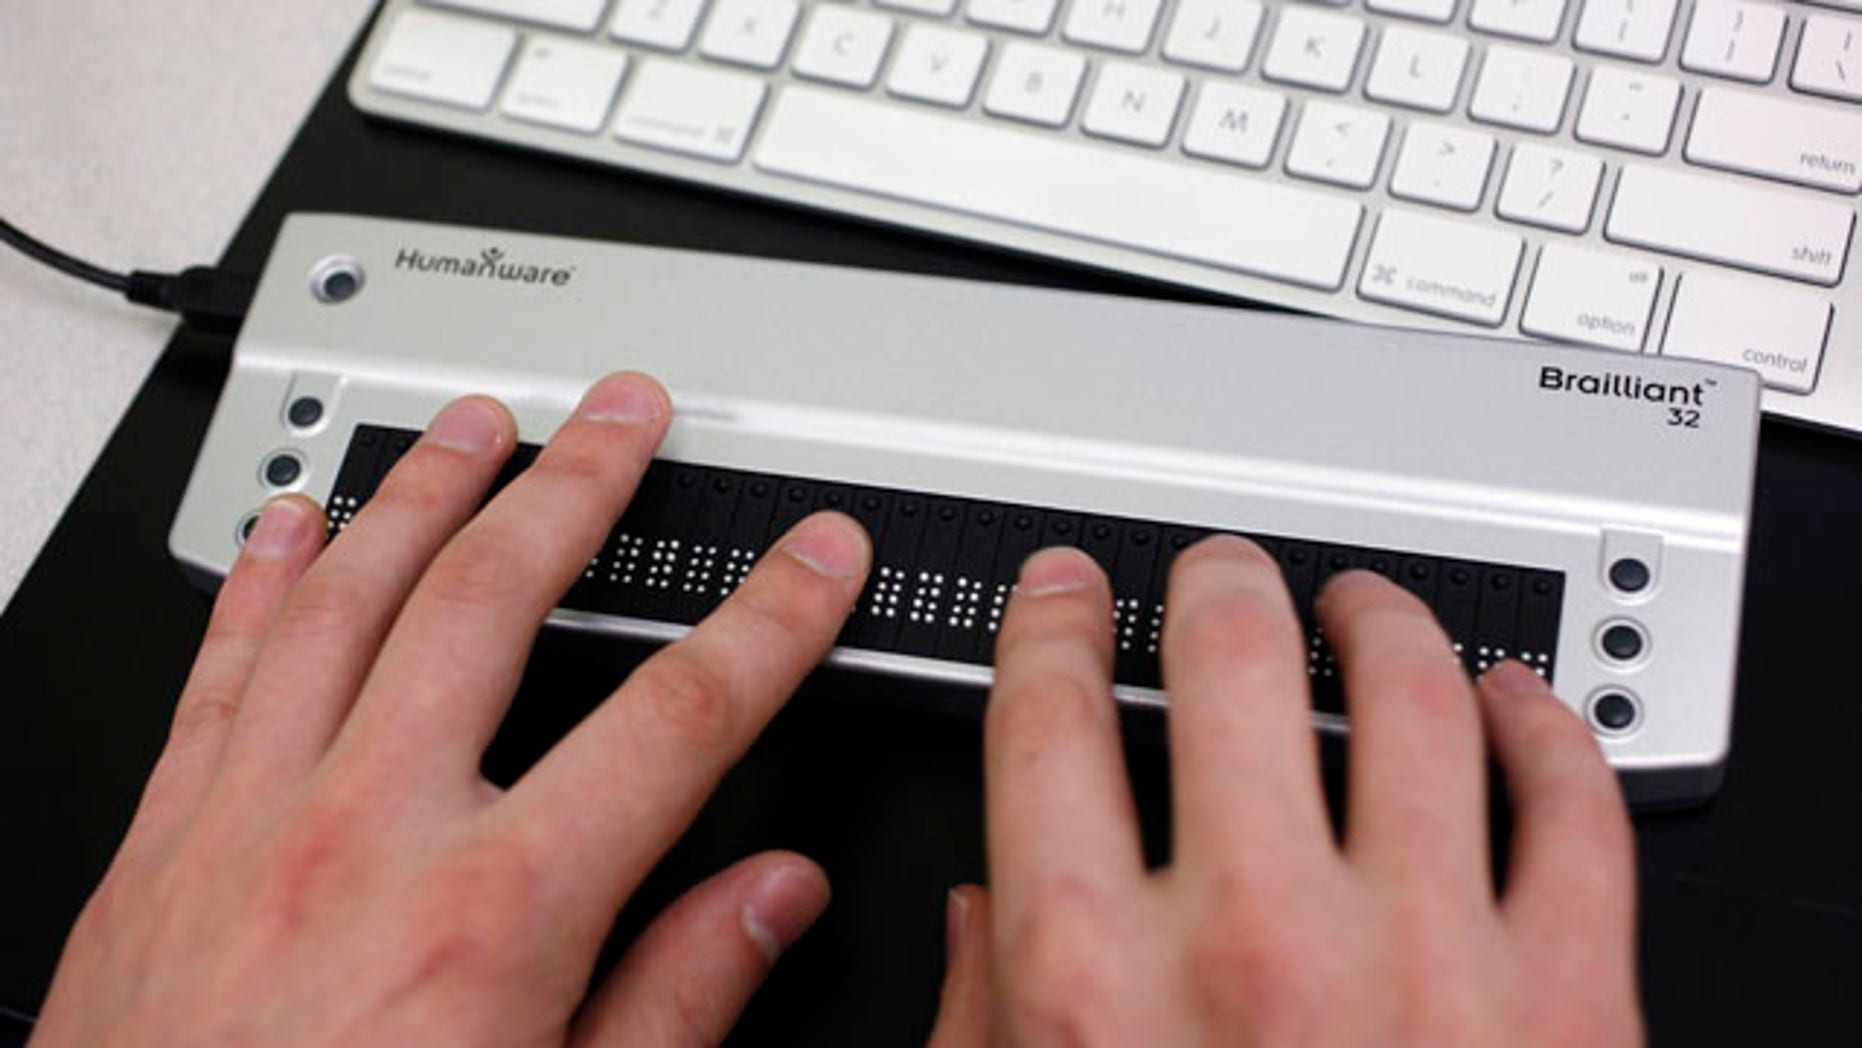 """Victor Tsaran, co-director of Yahoo's """"Accessibility Lab,"""" uses a Braille keyboard at headquarters in Sunnyvale, Calif. The """"Accessibility Lab lets programmers and developers try various assistive technology software and hardware such as screen readers, Braille keyboards and other tools employed by disabled users to navigate the Web."""